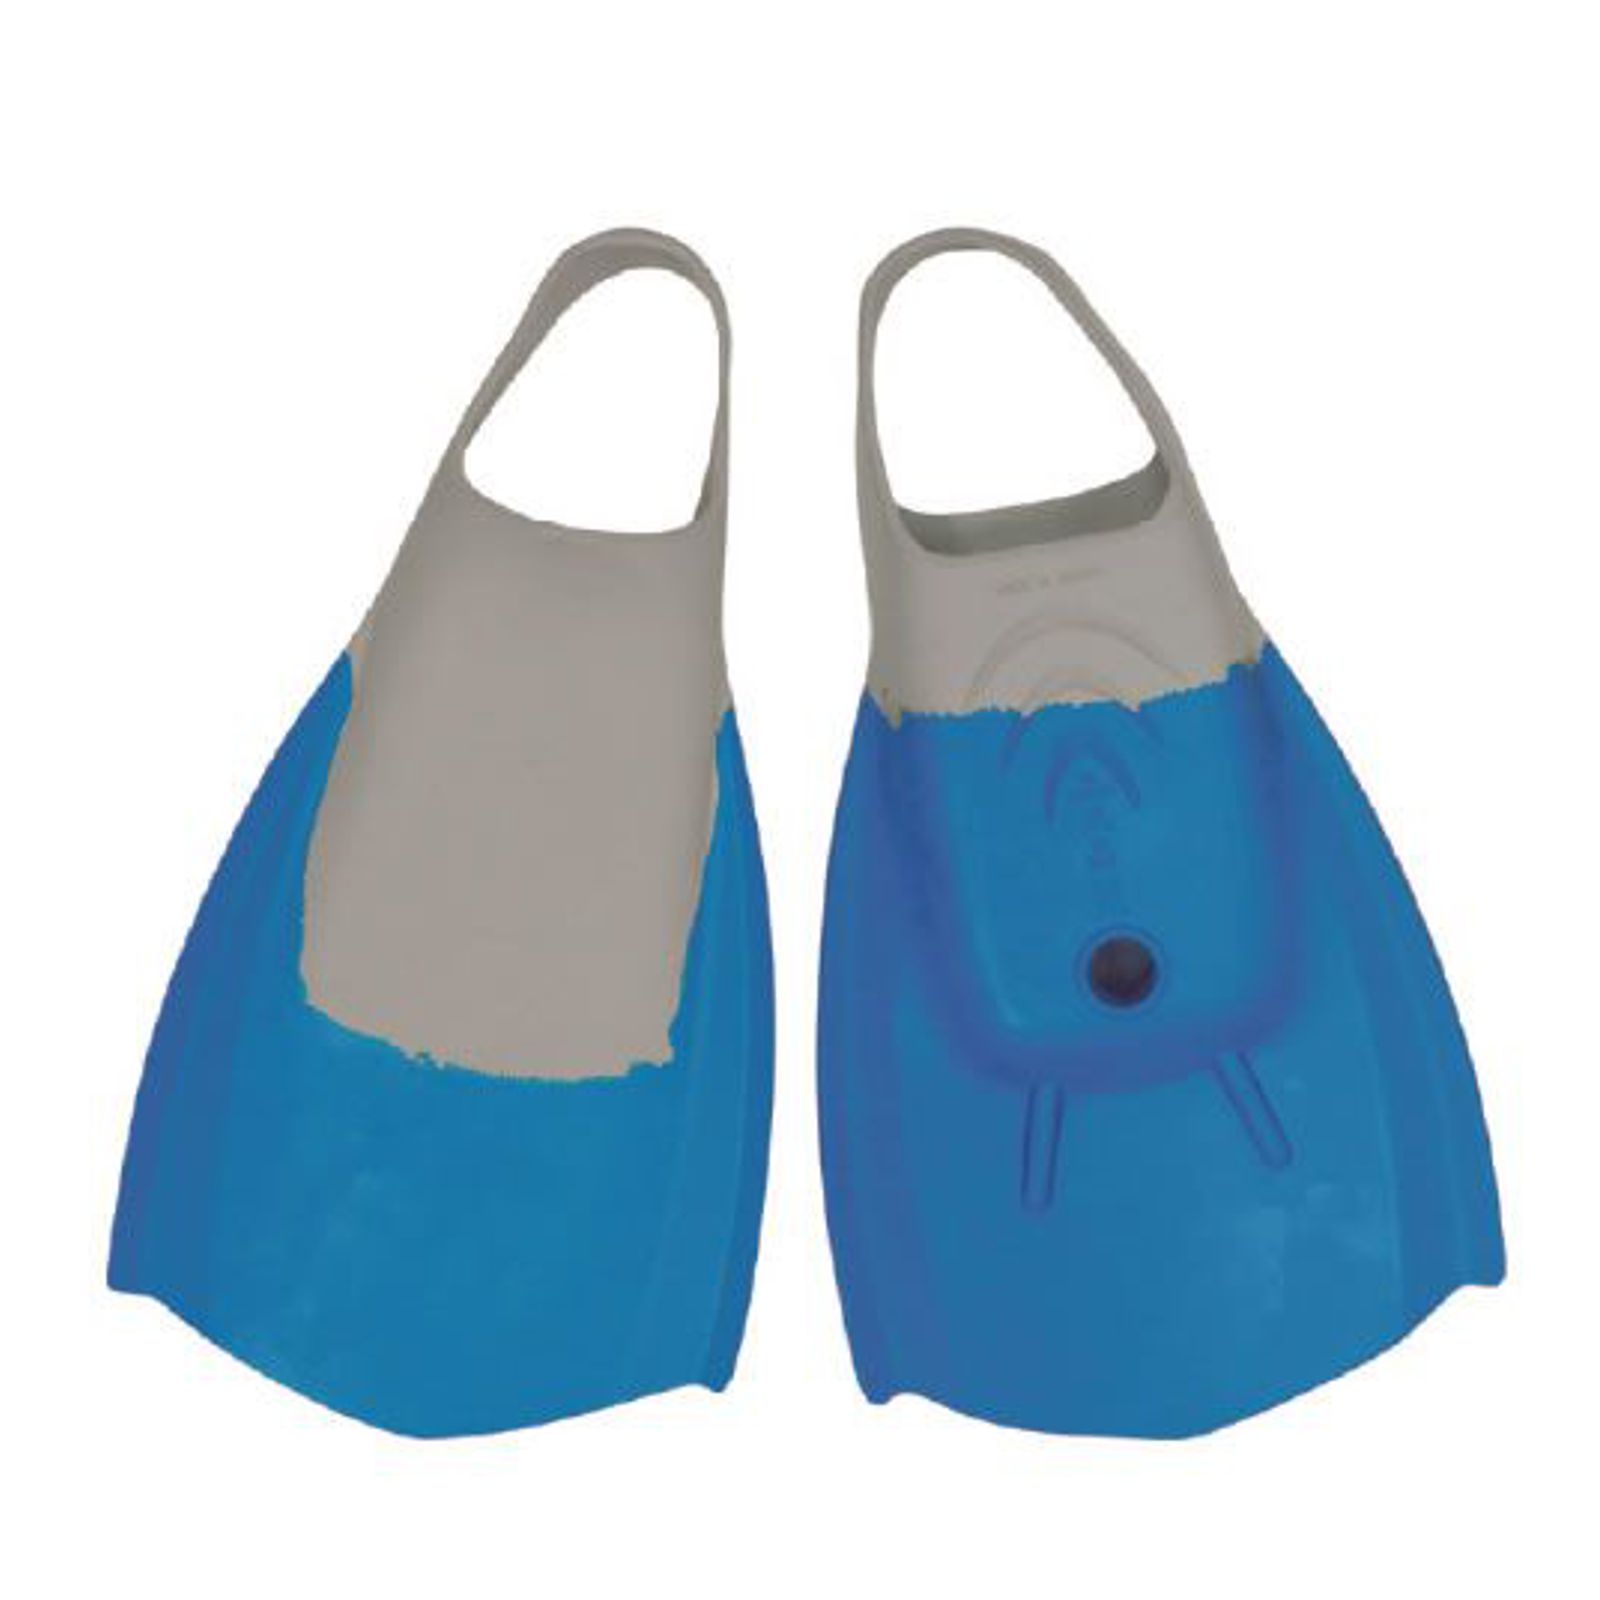 WAVE POWER Bodyboard Flossen XL 42-44 Blau Grau